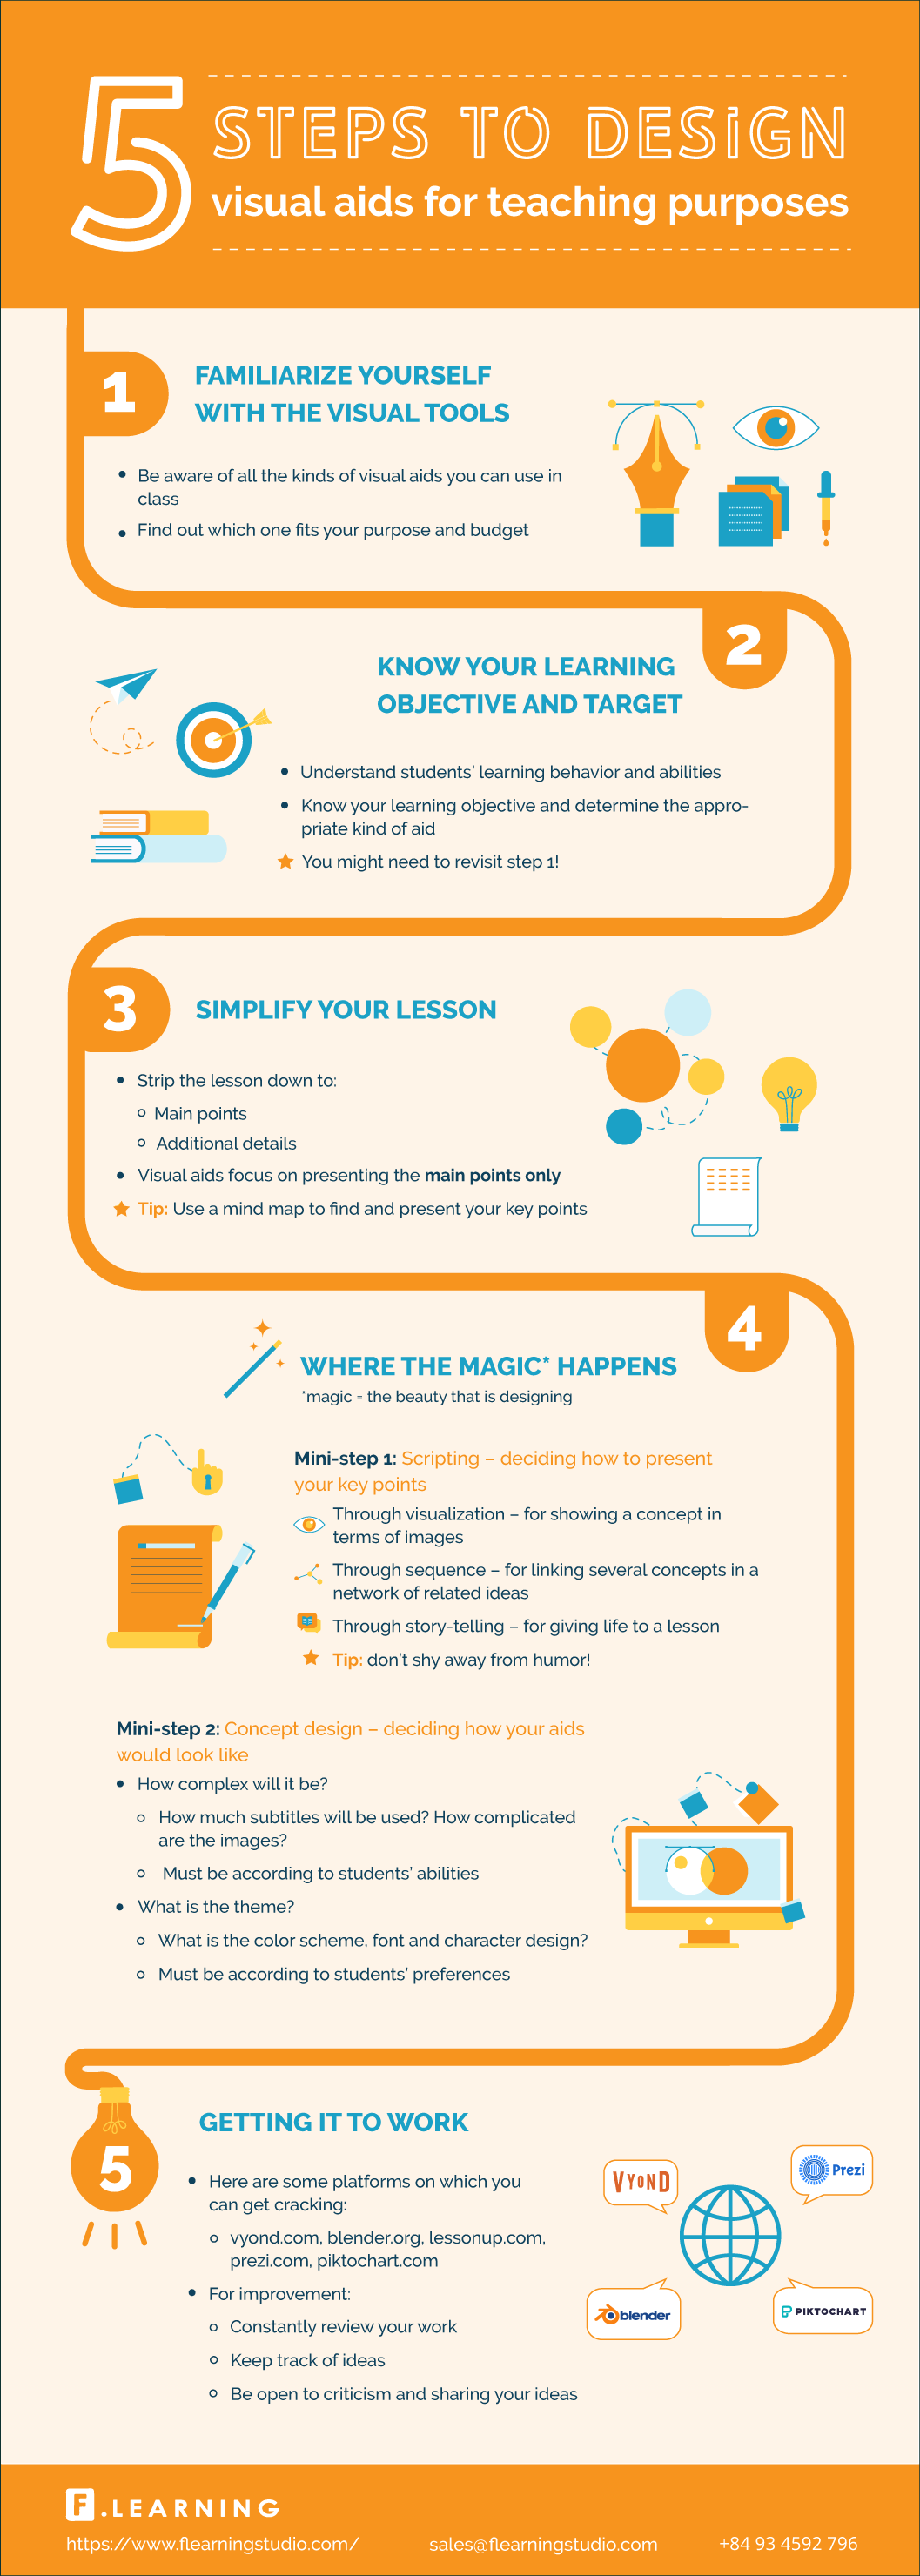 5 steps to design visual aids for teaching purposes #infographic